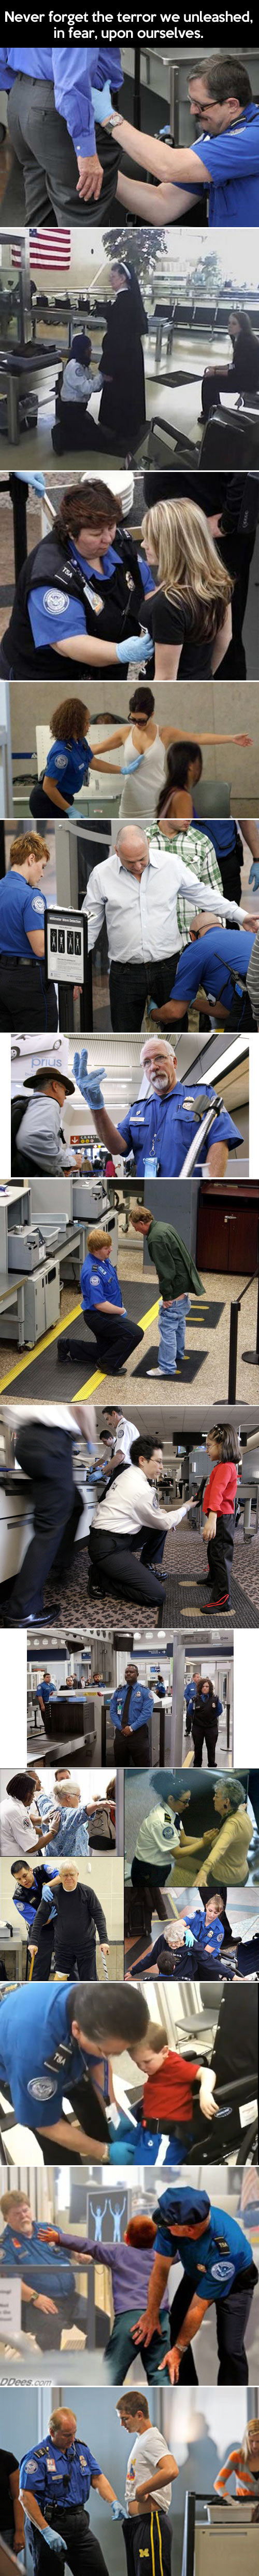 funny-pictures-airport-security-check-officer